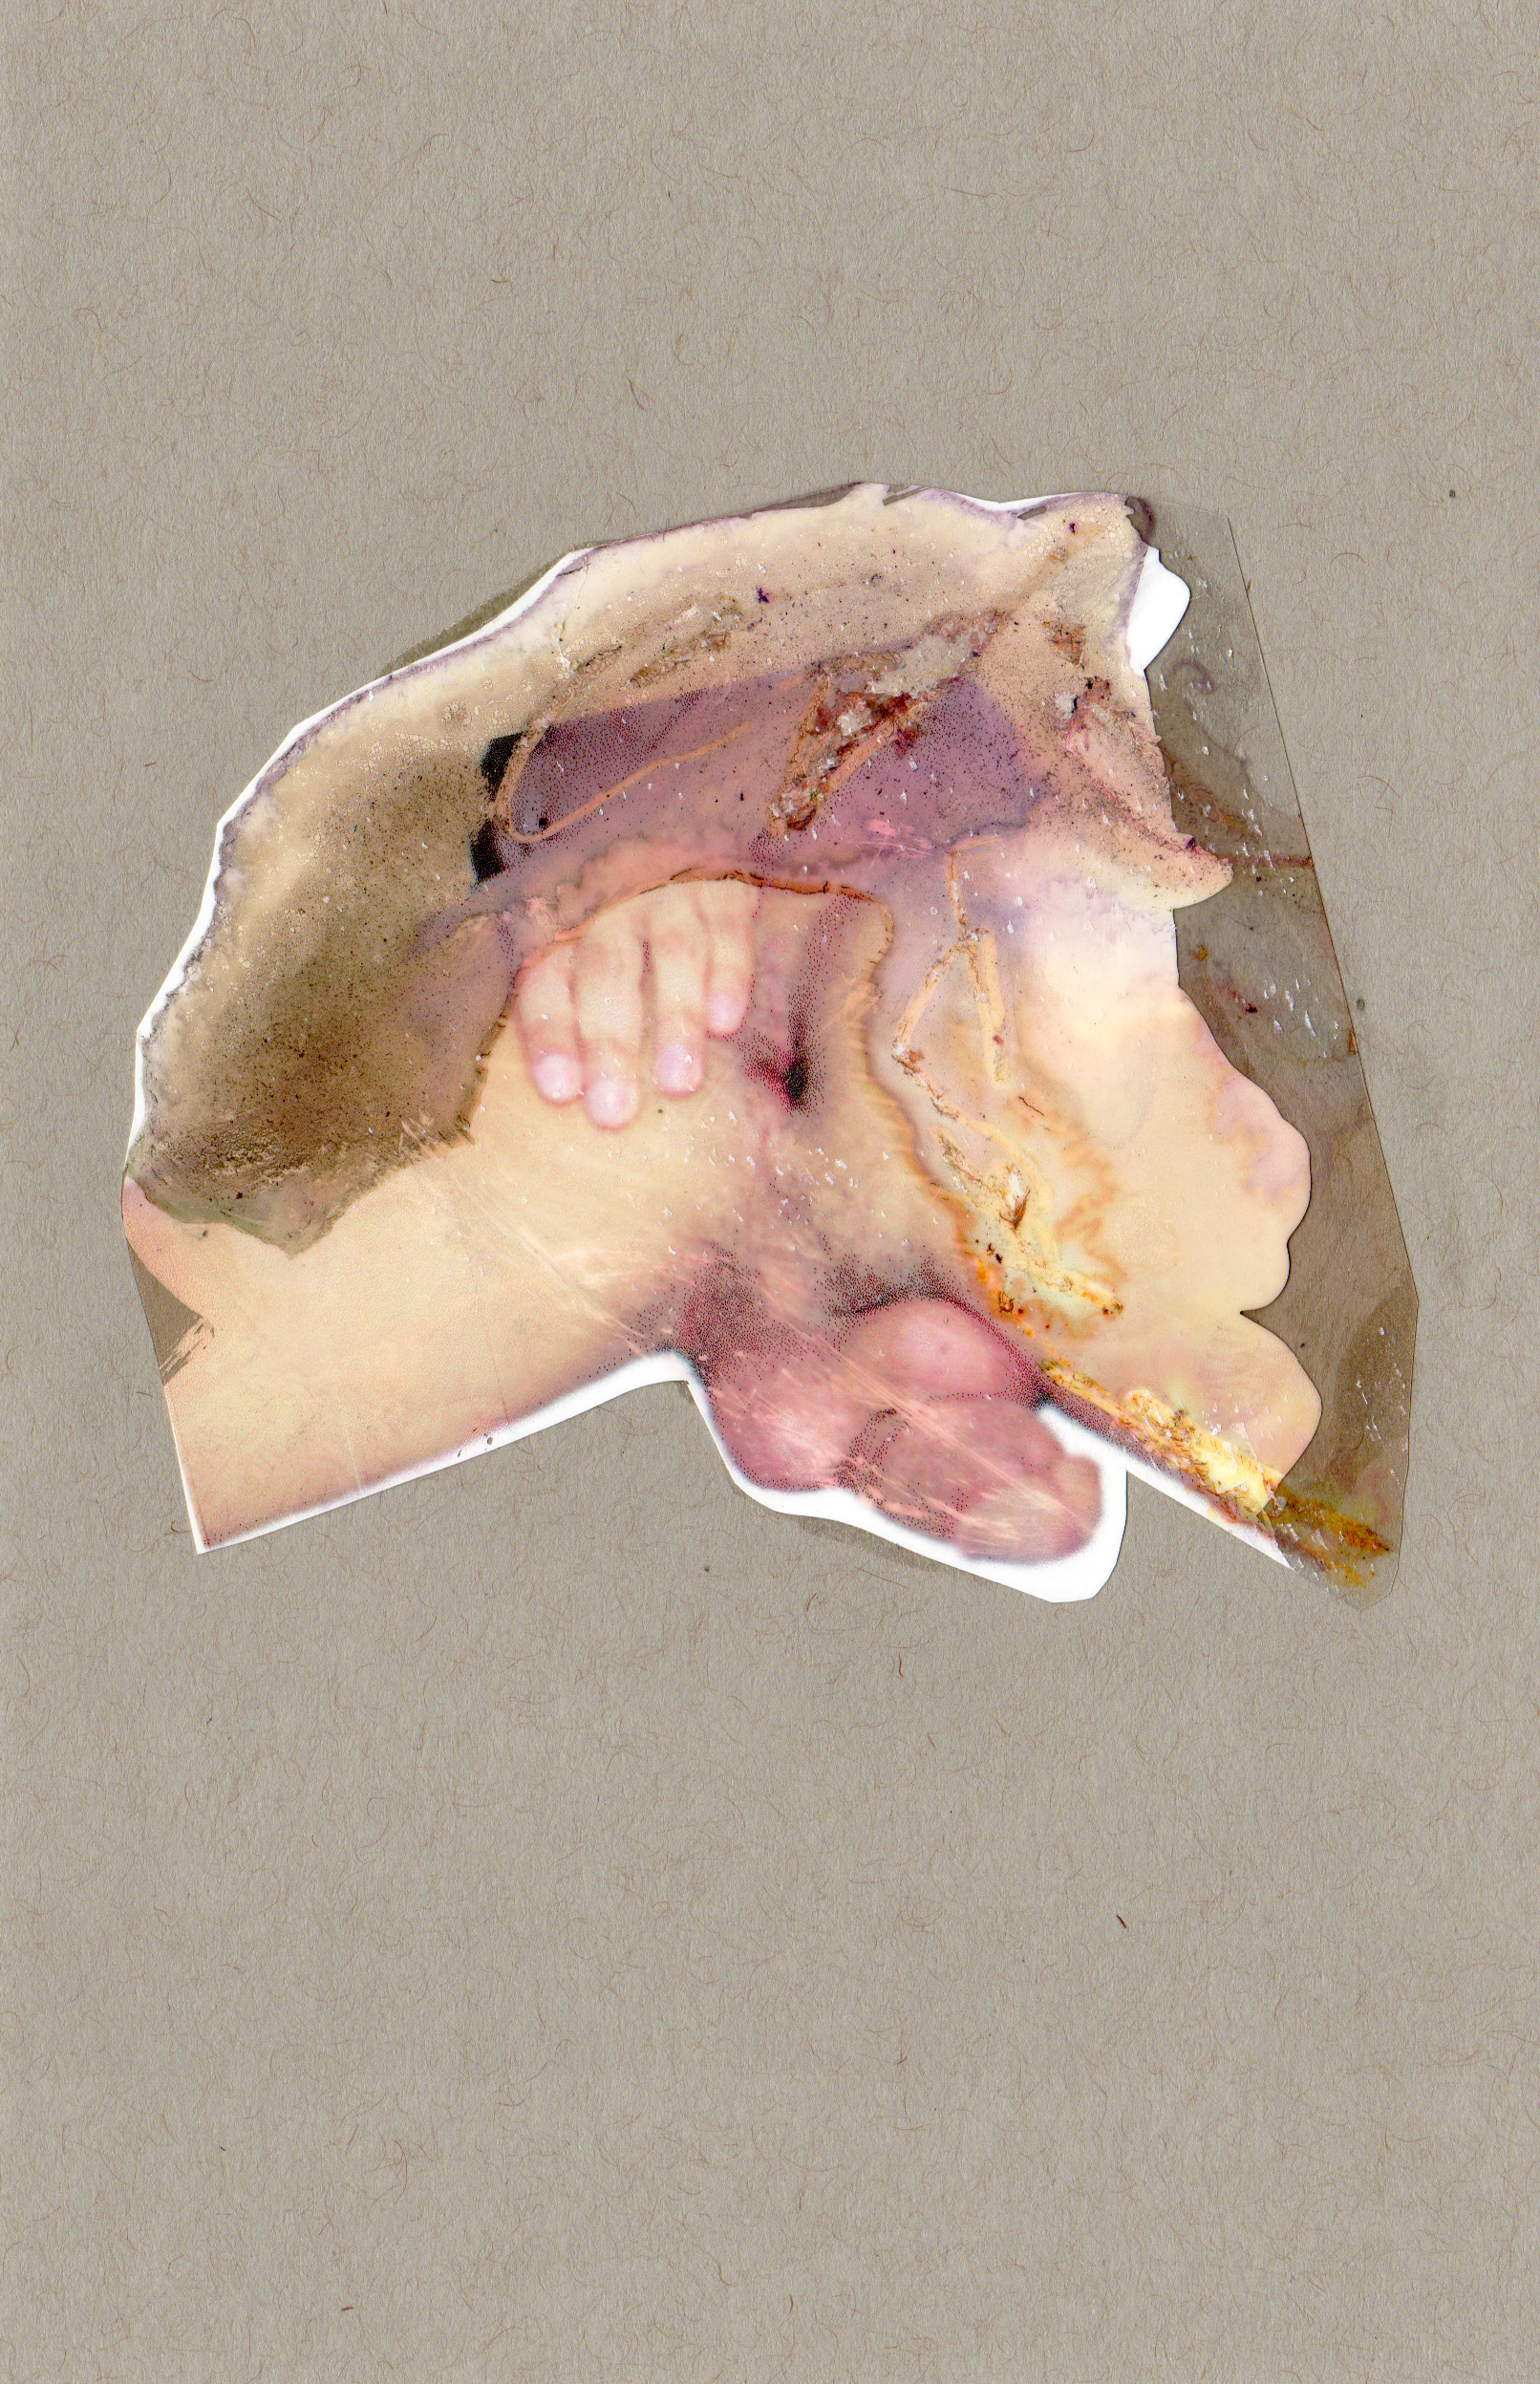 Lure, 2014, paint transparency archival ink and paper, 8.5x5.5 inches